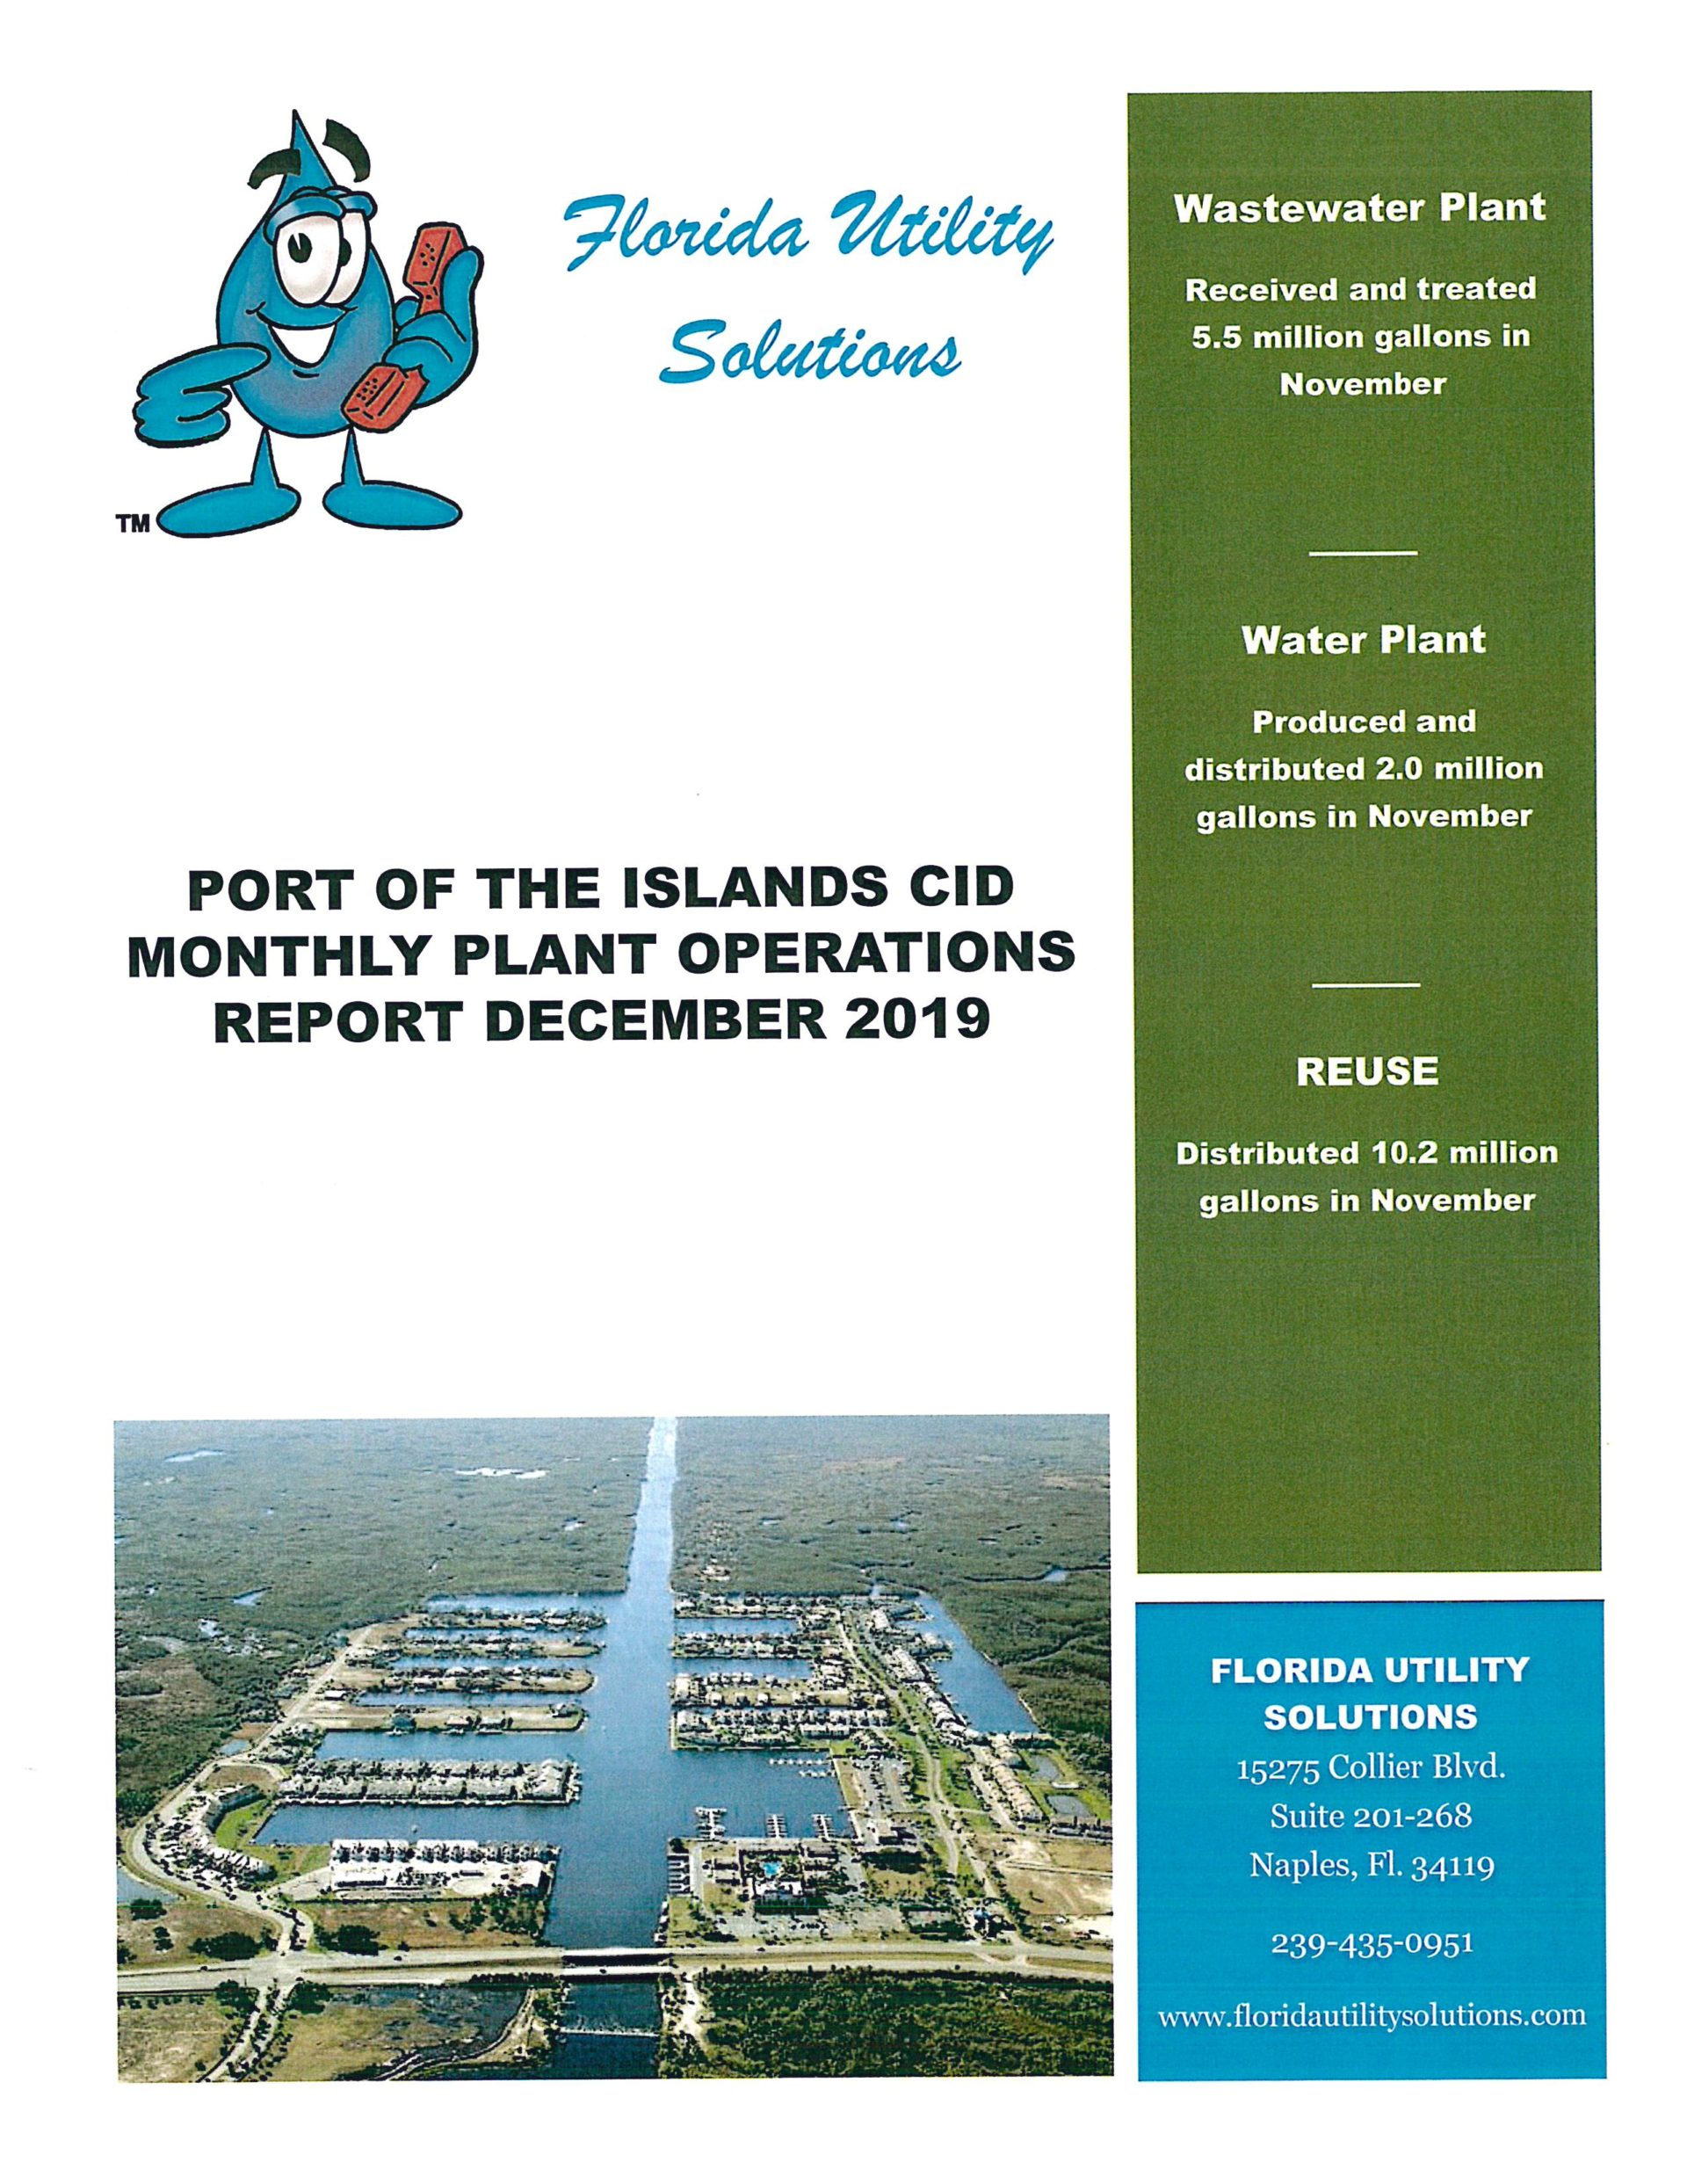 Port of the Islands Florida Utility Solutions report page 1